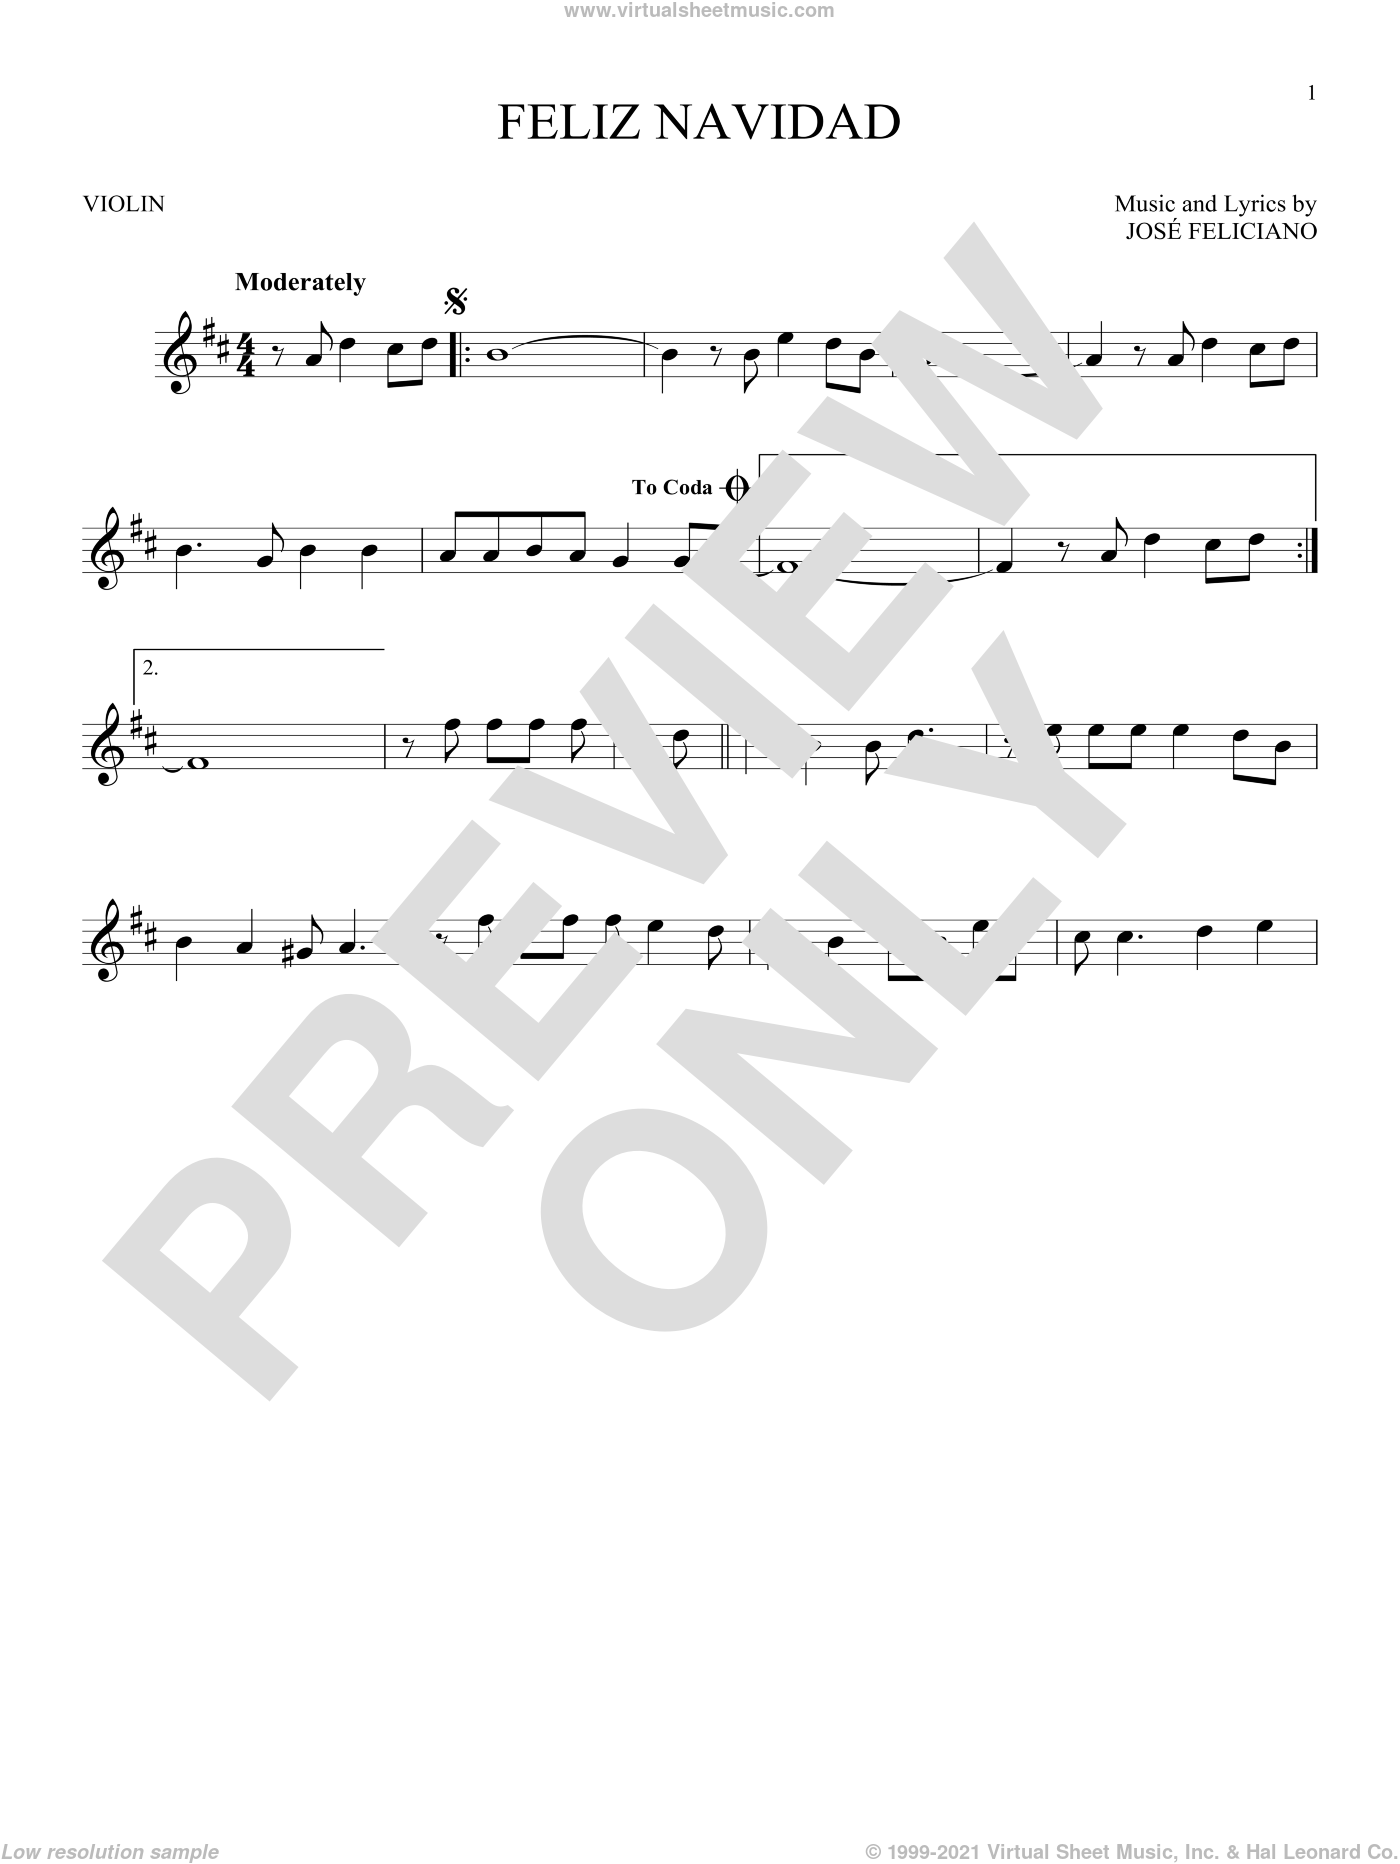 Feliz Navidad sheet music for violin solo by Jose Feliciano, intermediate